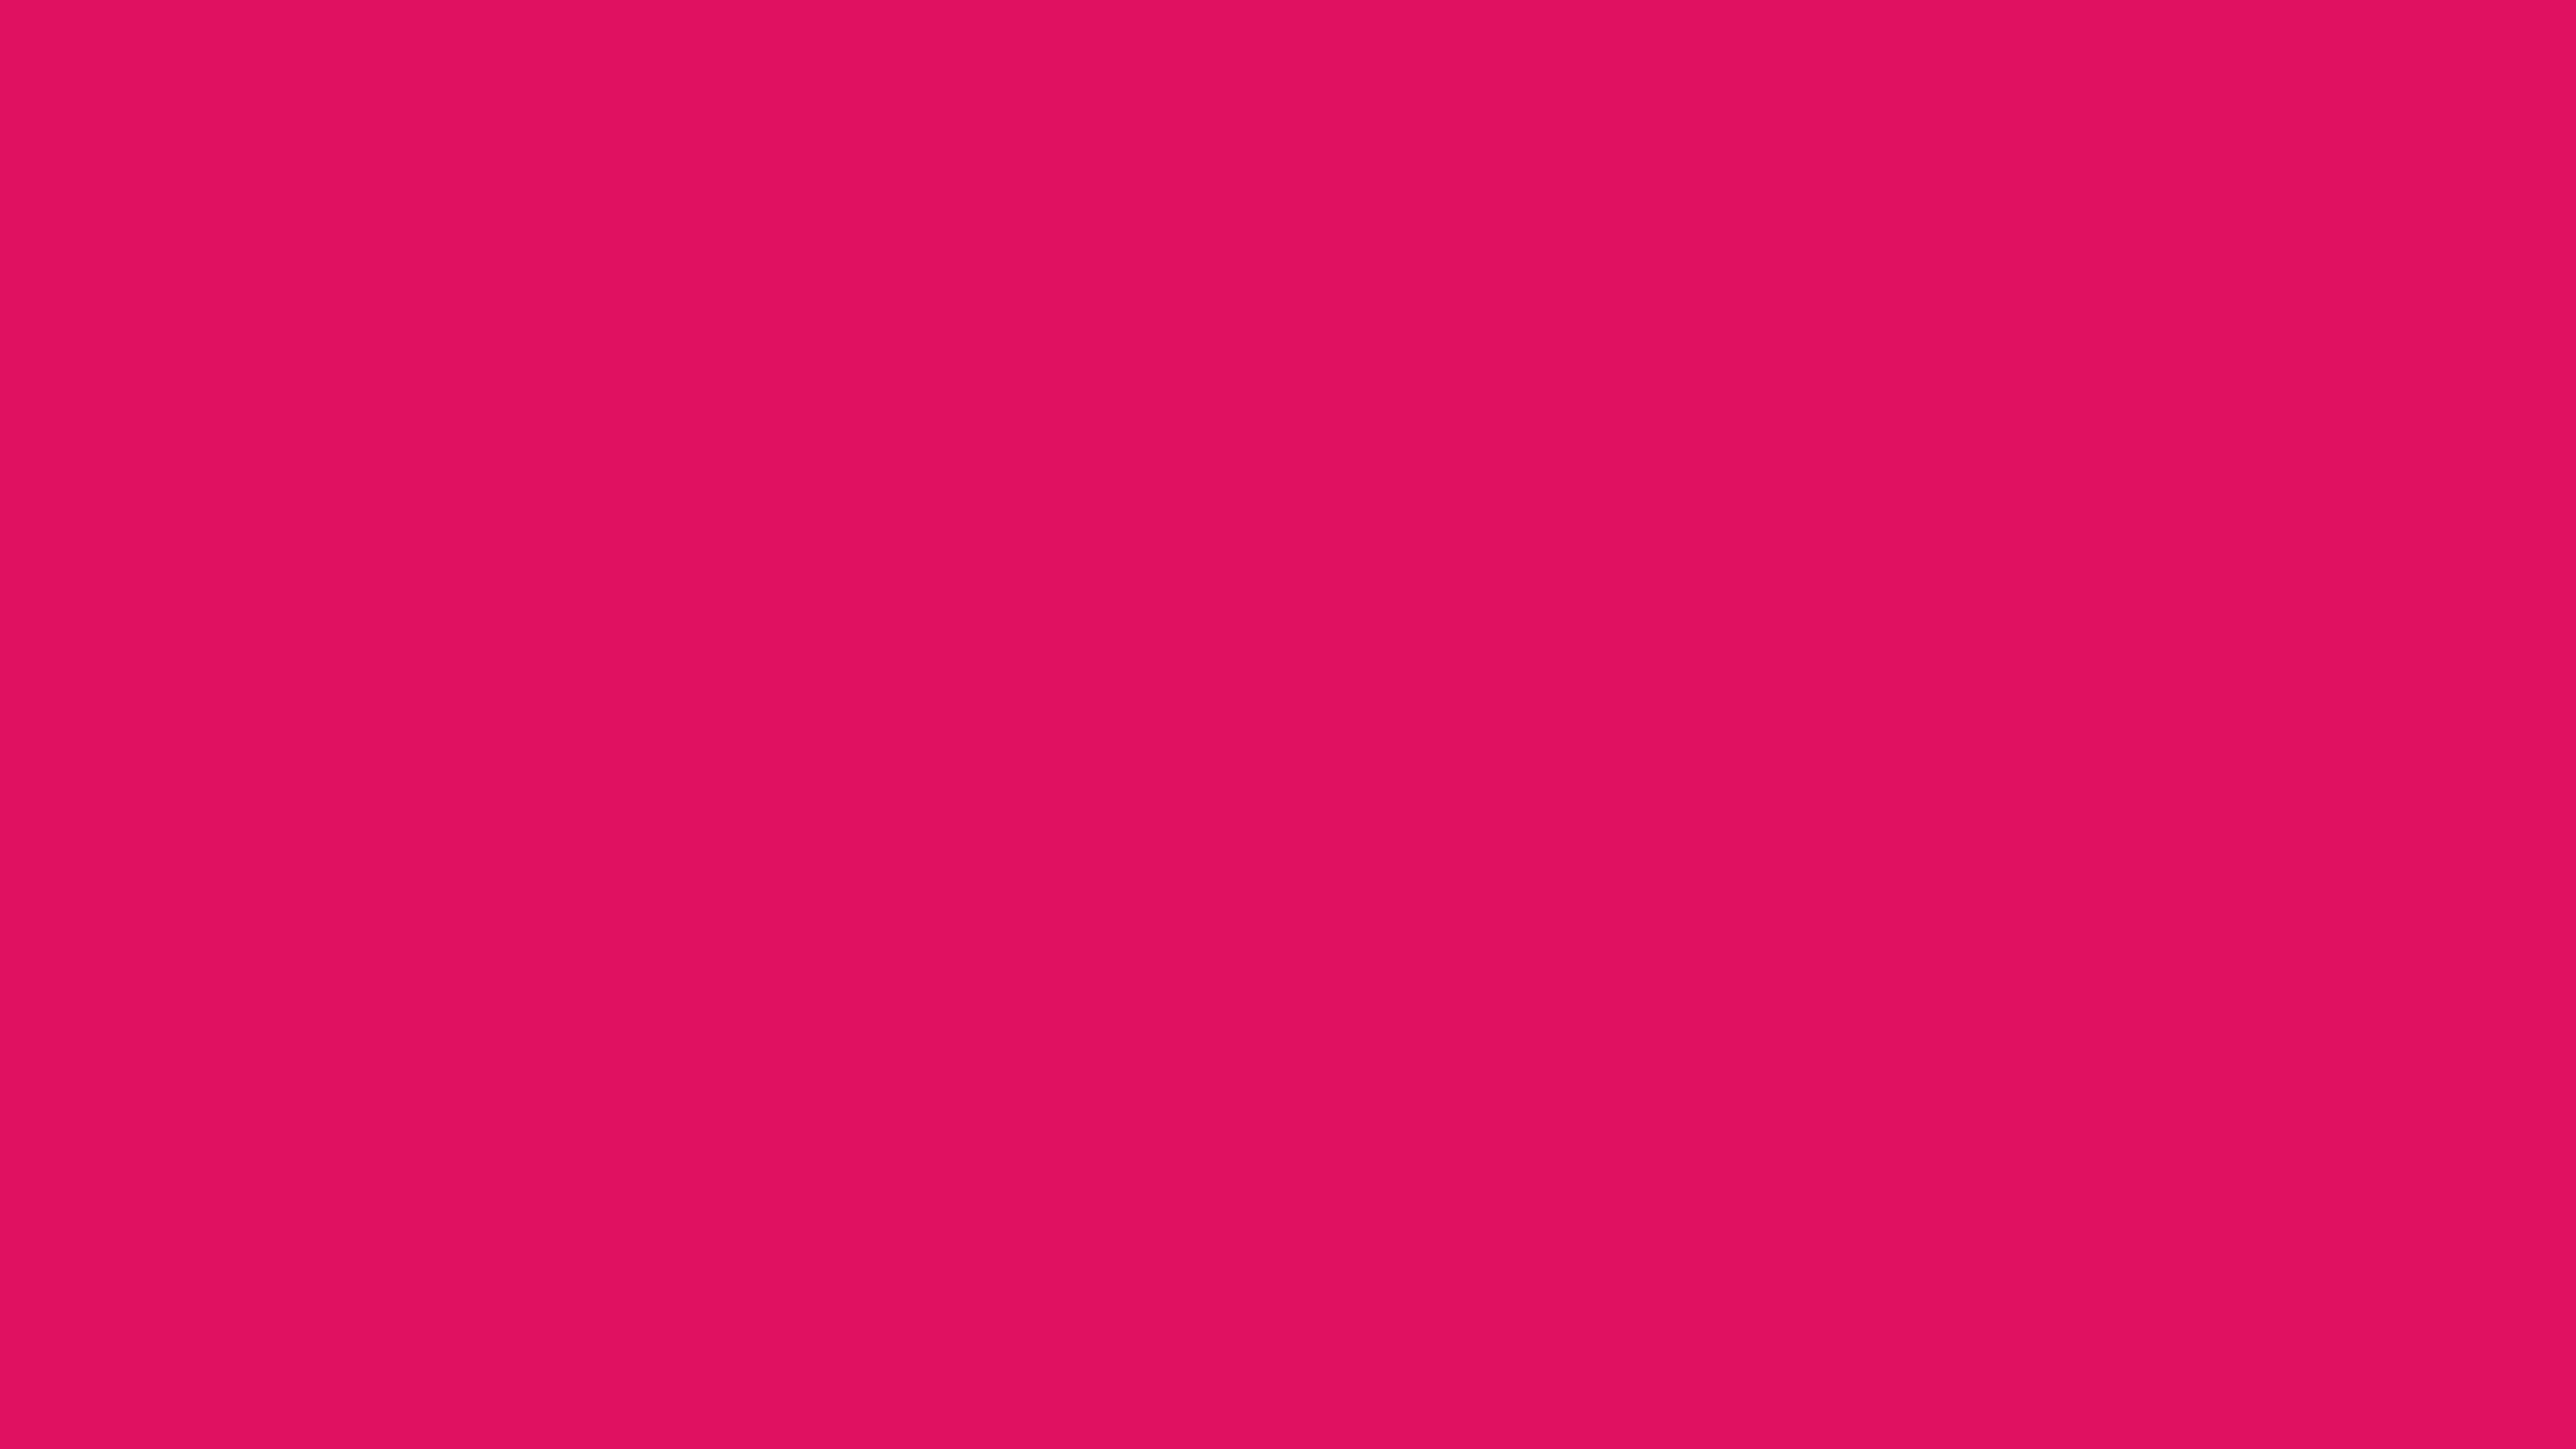 5120x2880 Ruby Solid Color Background